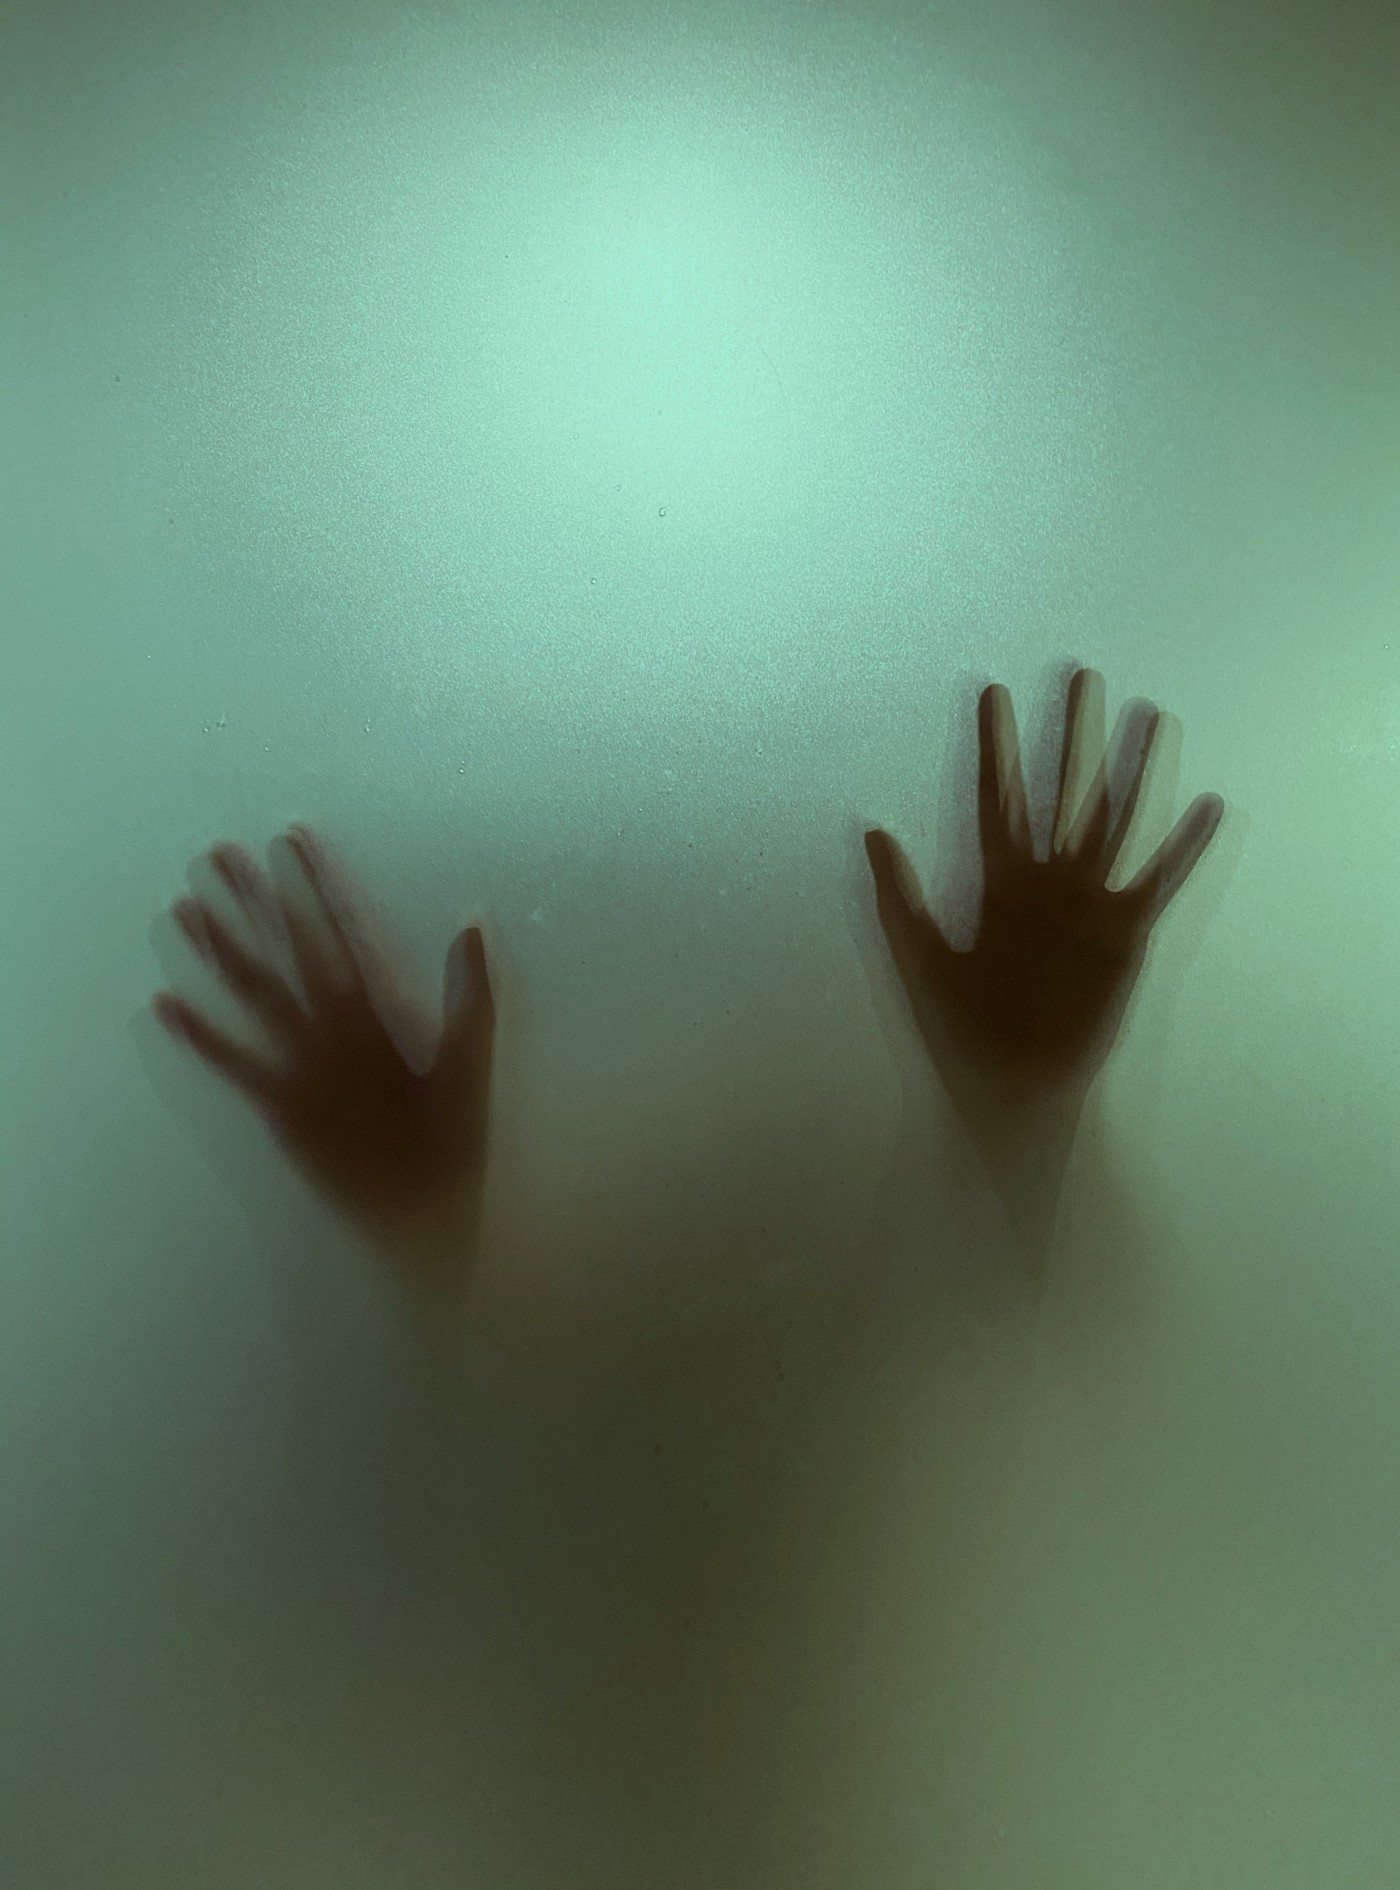 hand sitting on palm facing up on a foggy glass